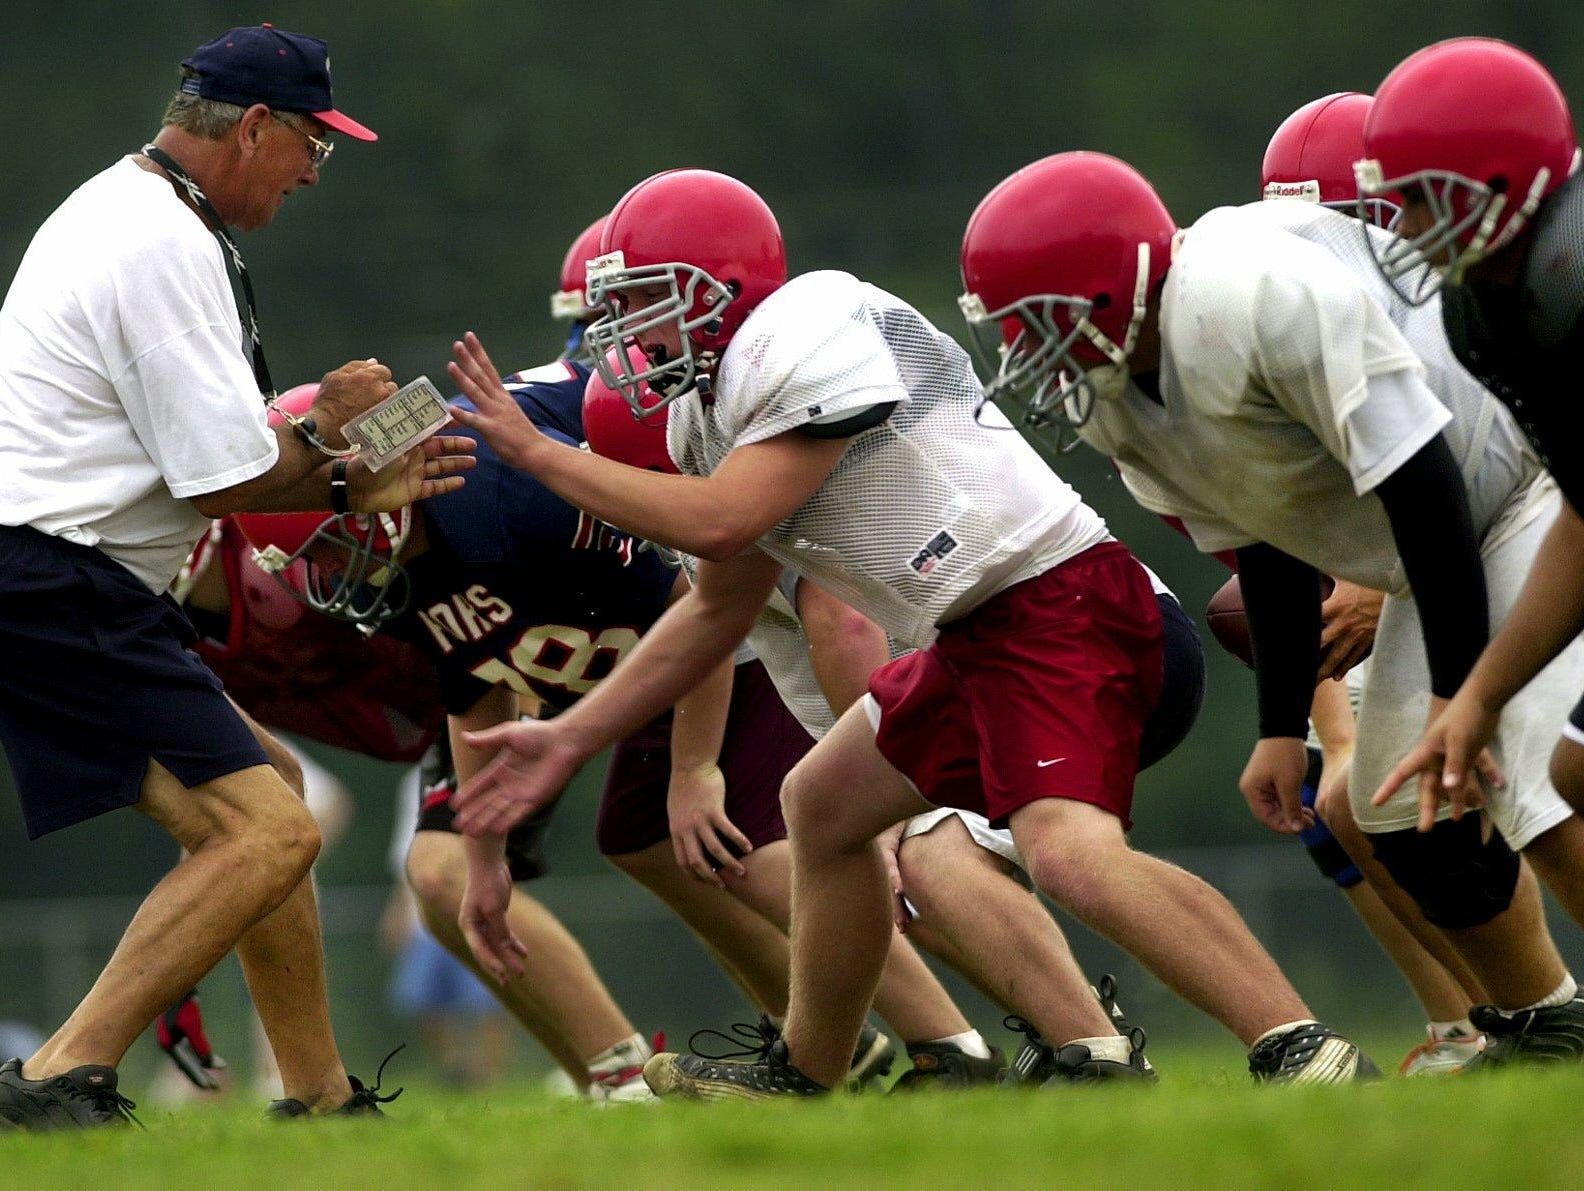 Chenango Forks High School's assistant football coach David Chickanosky works with the offensive line during drills at practice.